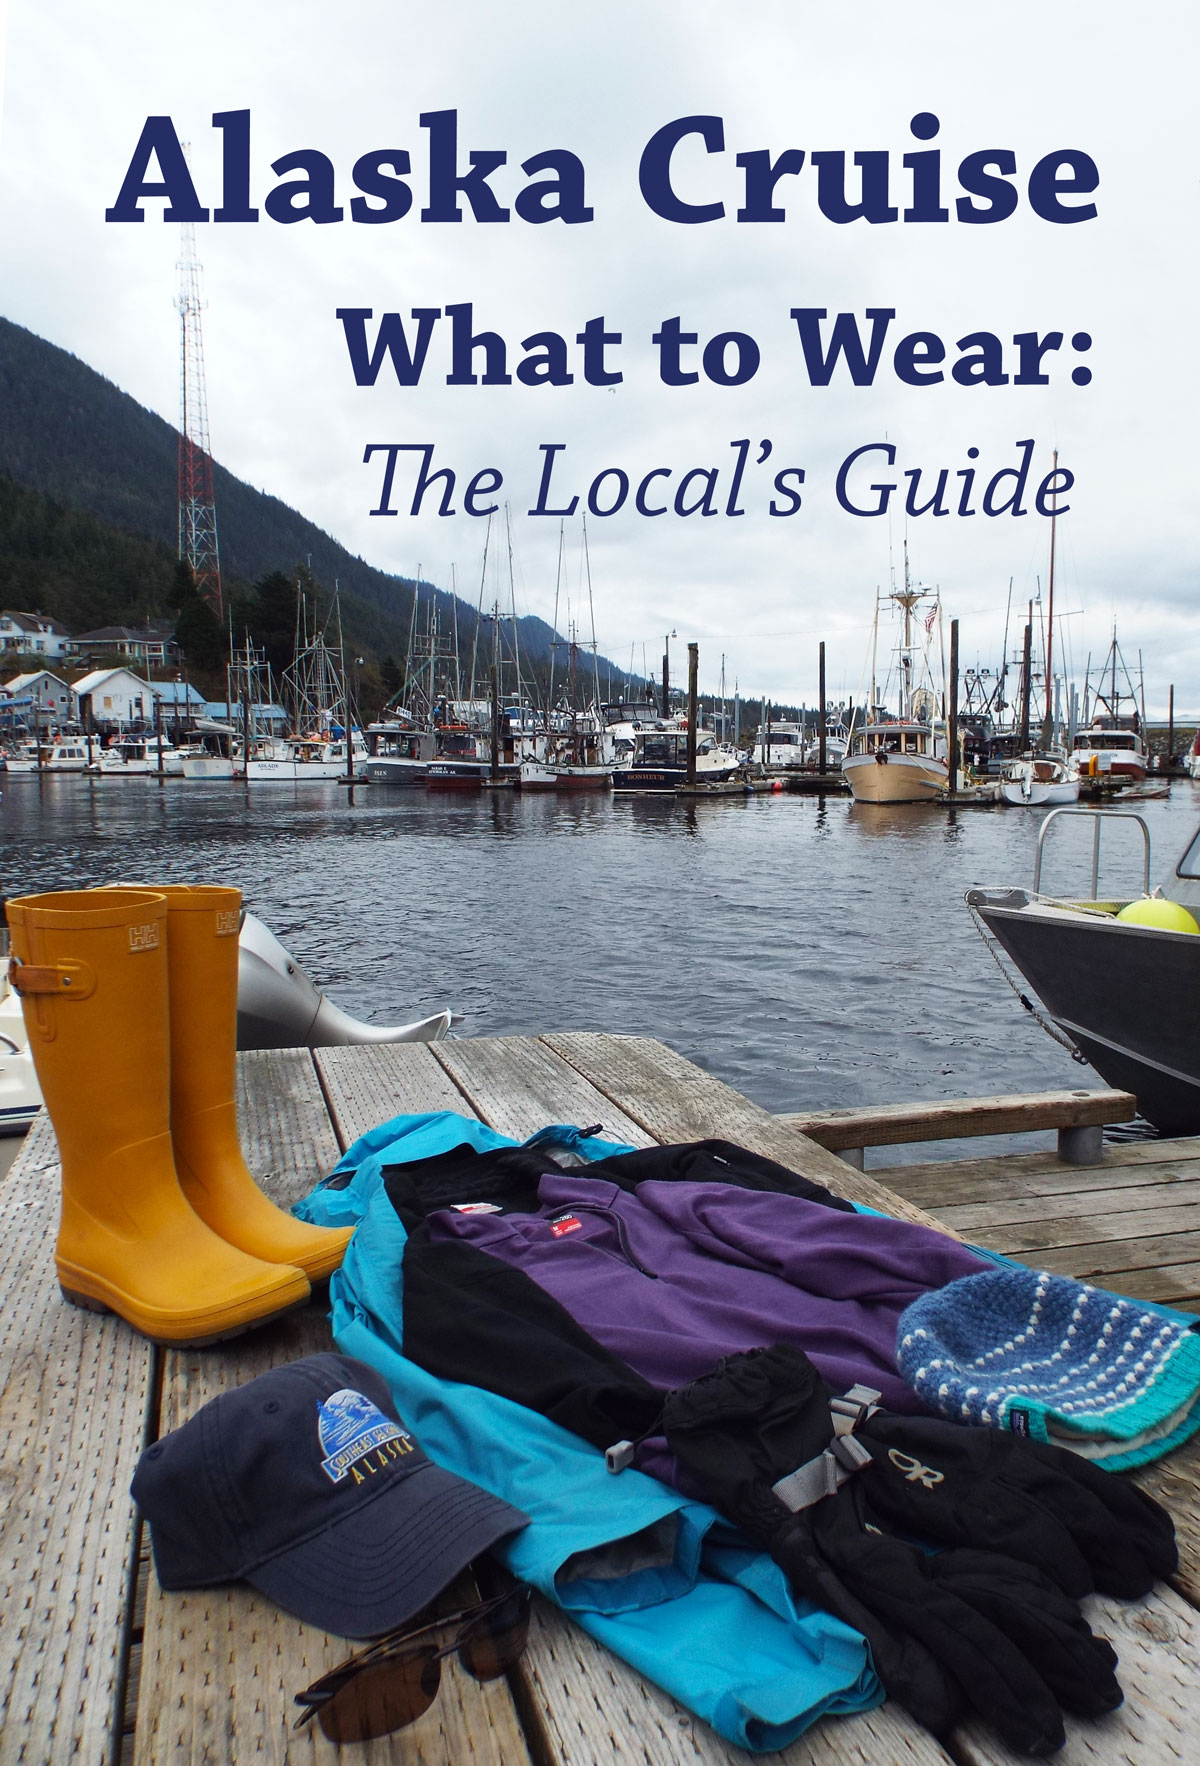 We're not super stylish, but we've been sharing the fun and beauty of kayaking in Ketchikan with visitors for over 20 years. Here's our local's guide to how to dress for outdoor adventures in Southeast Alaska.